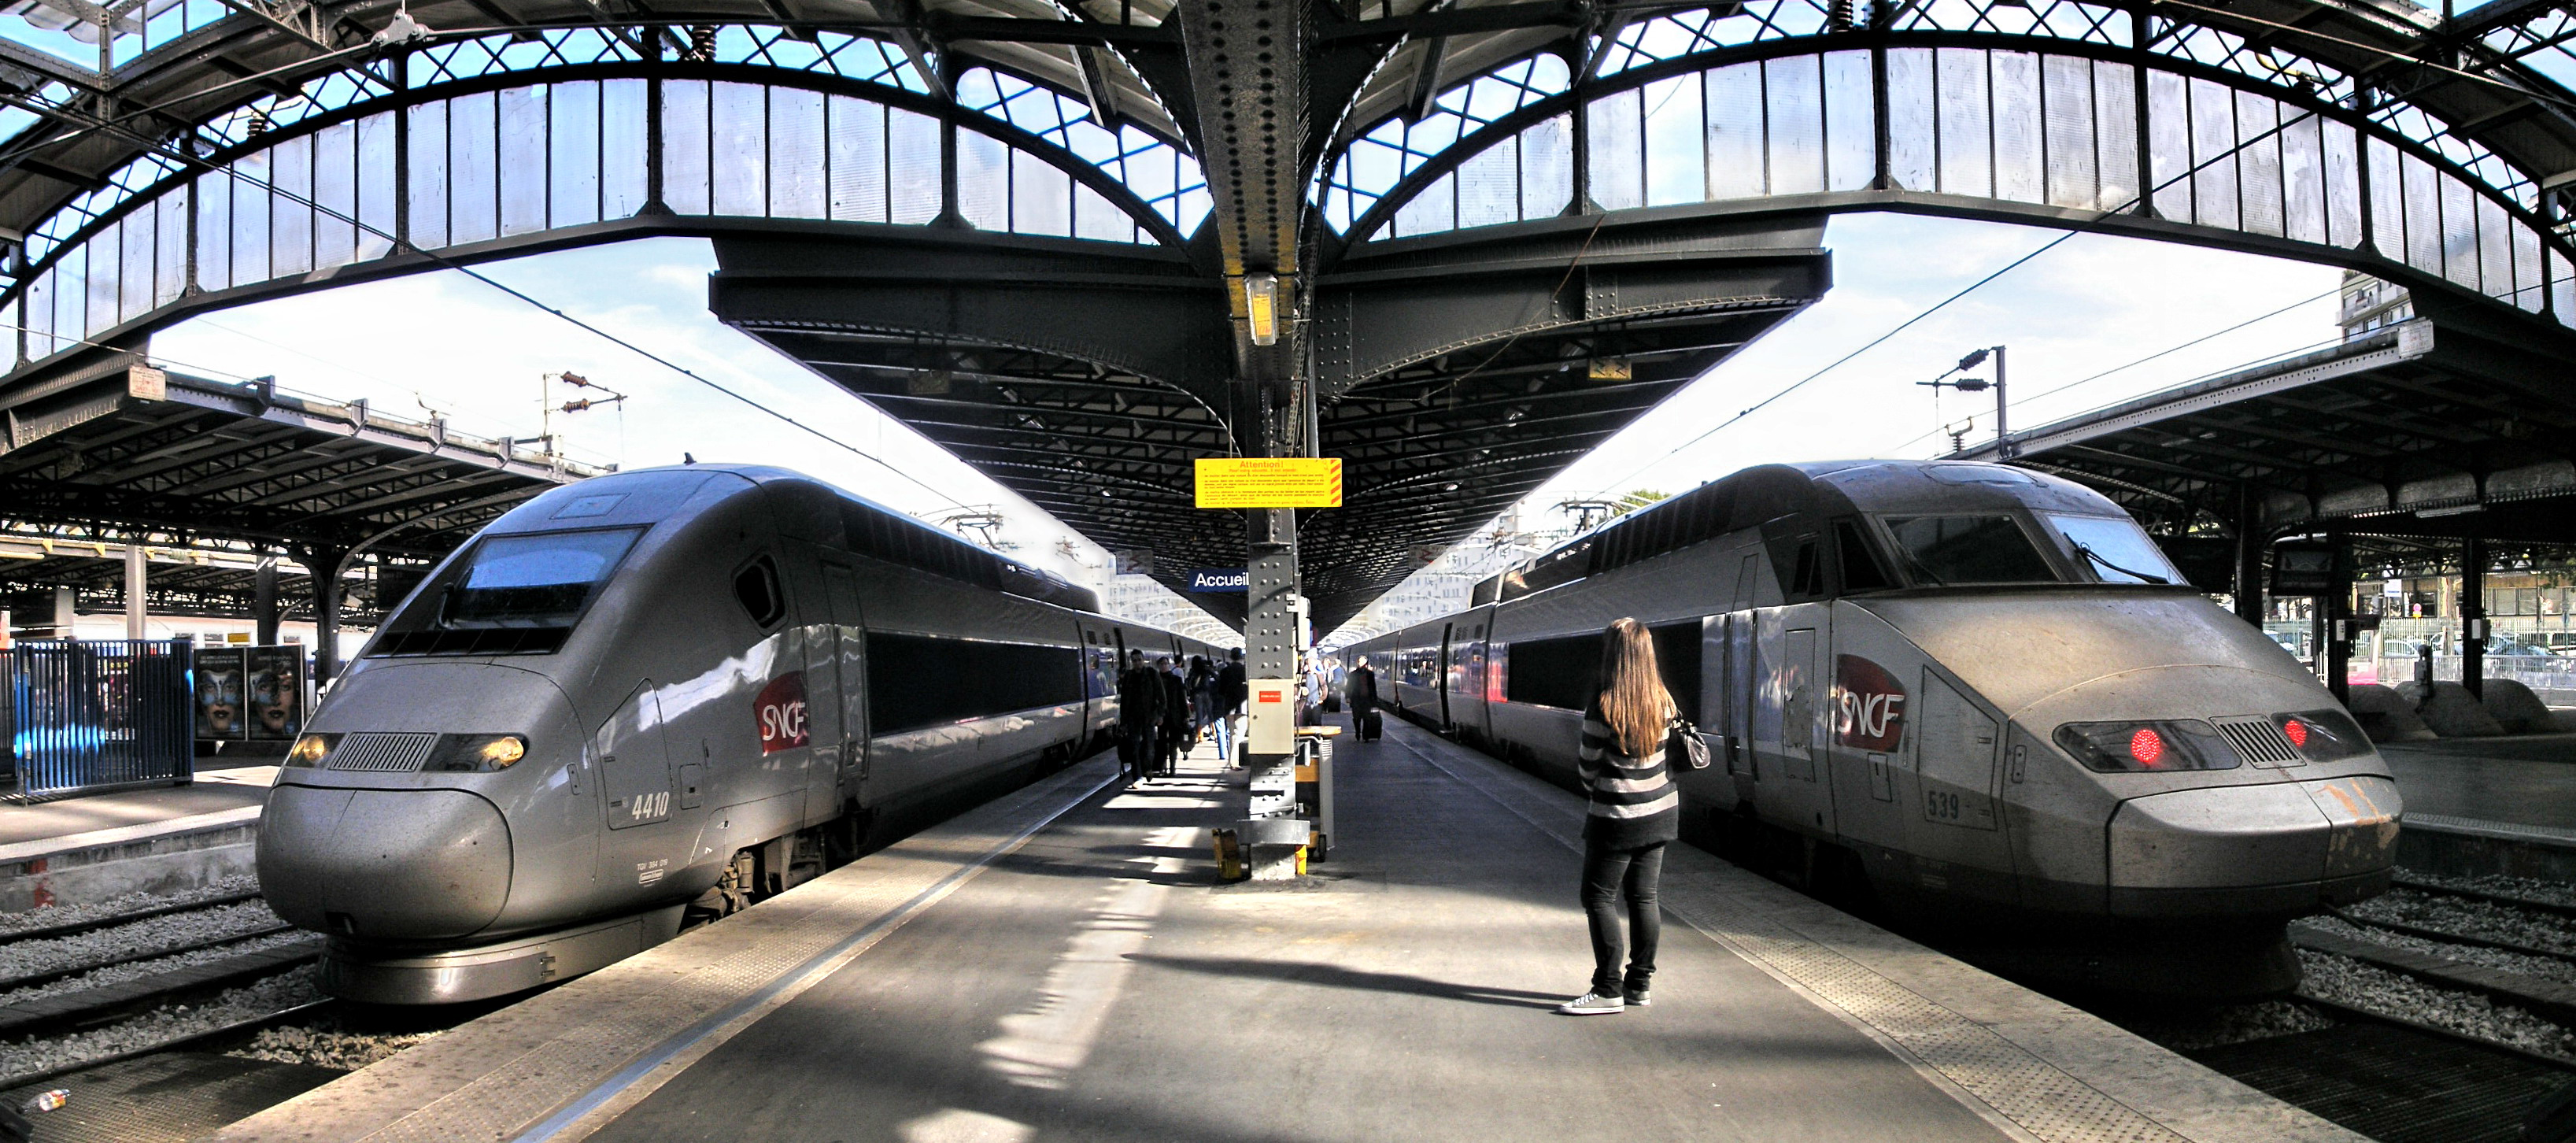 Paris Train The Top 10 Day Trips From Paris By Train Parisbym